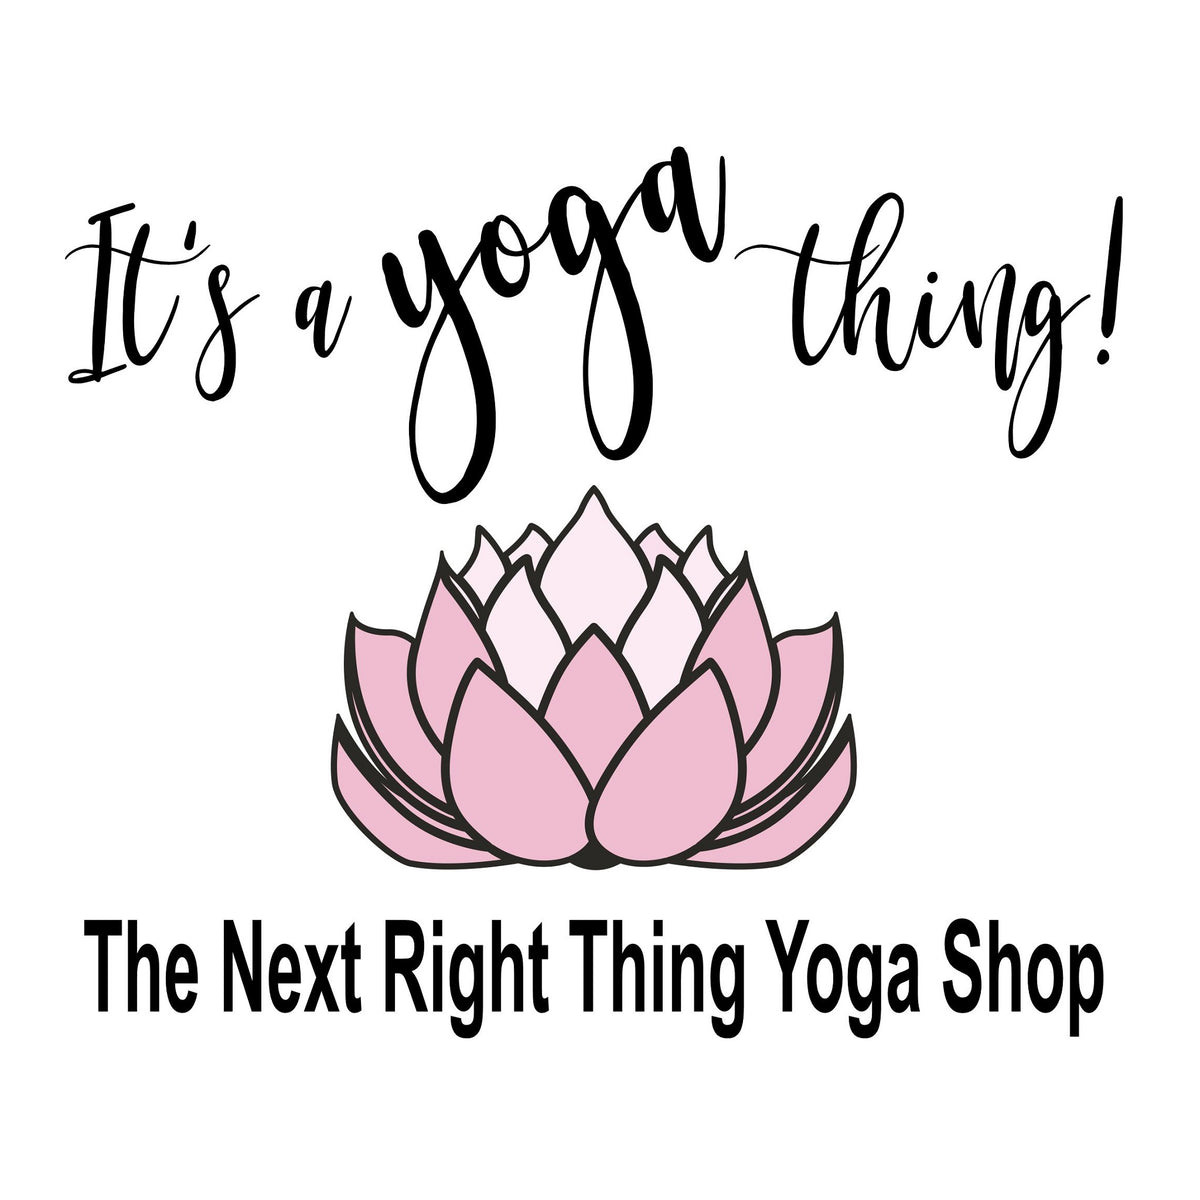 The Next Right Thing Yoga